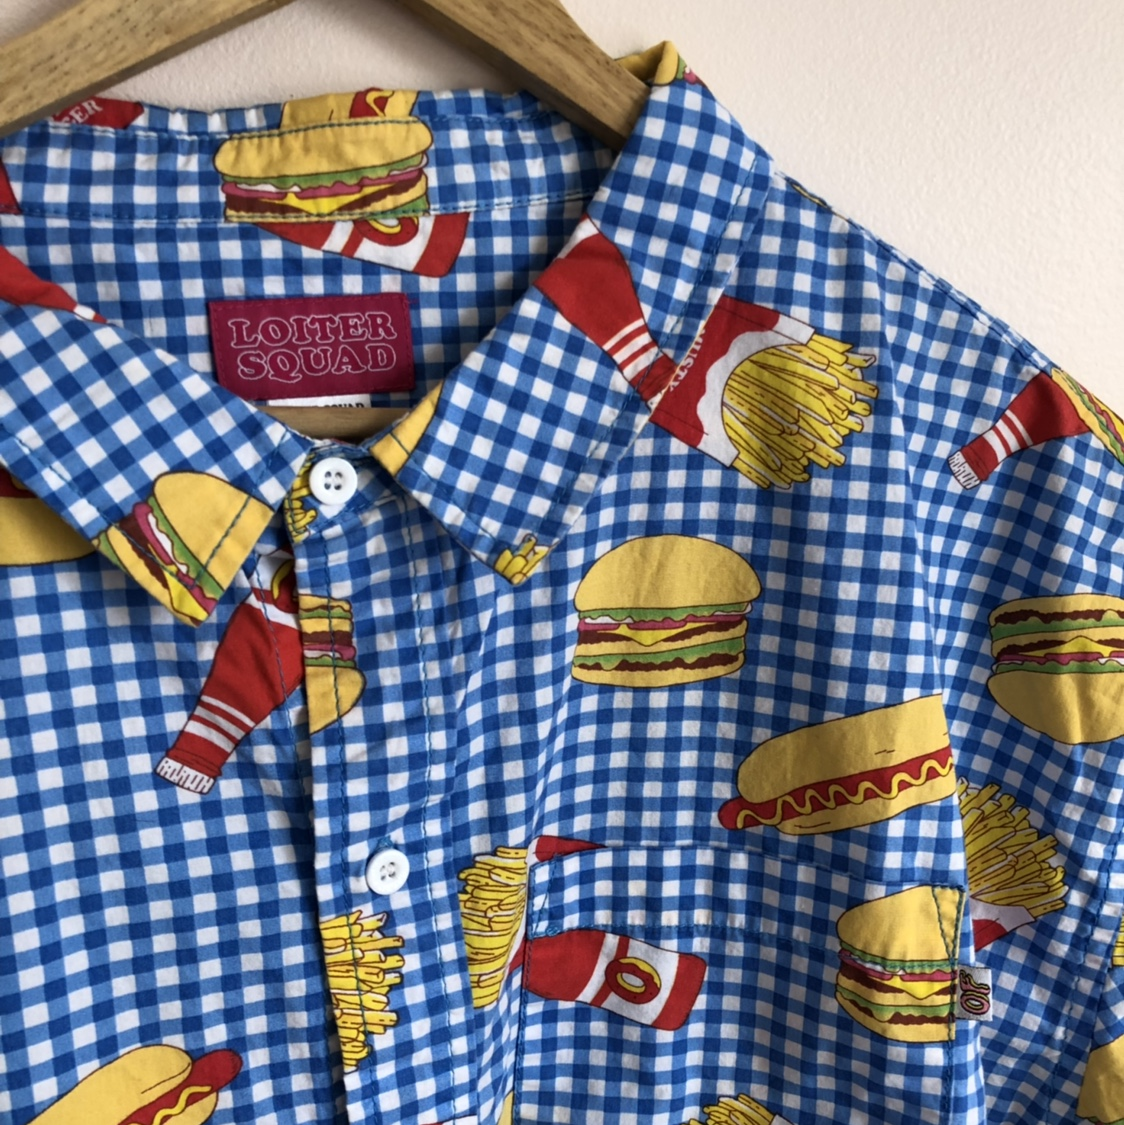 OG loiter squad button up  Burgers, fries, ketchup    - Depop